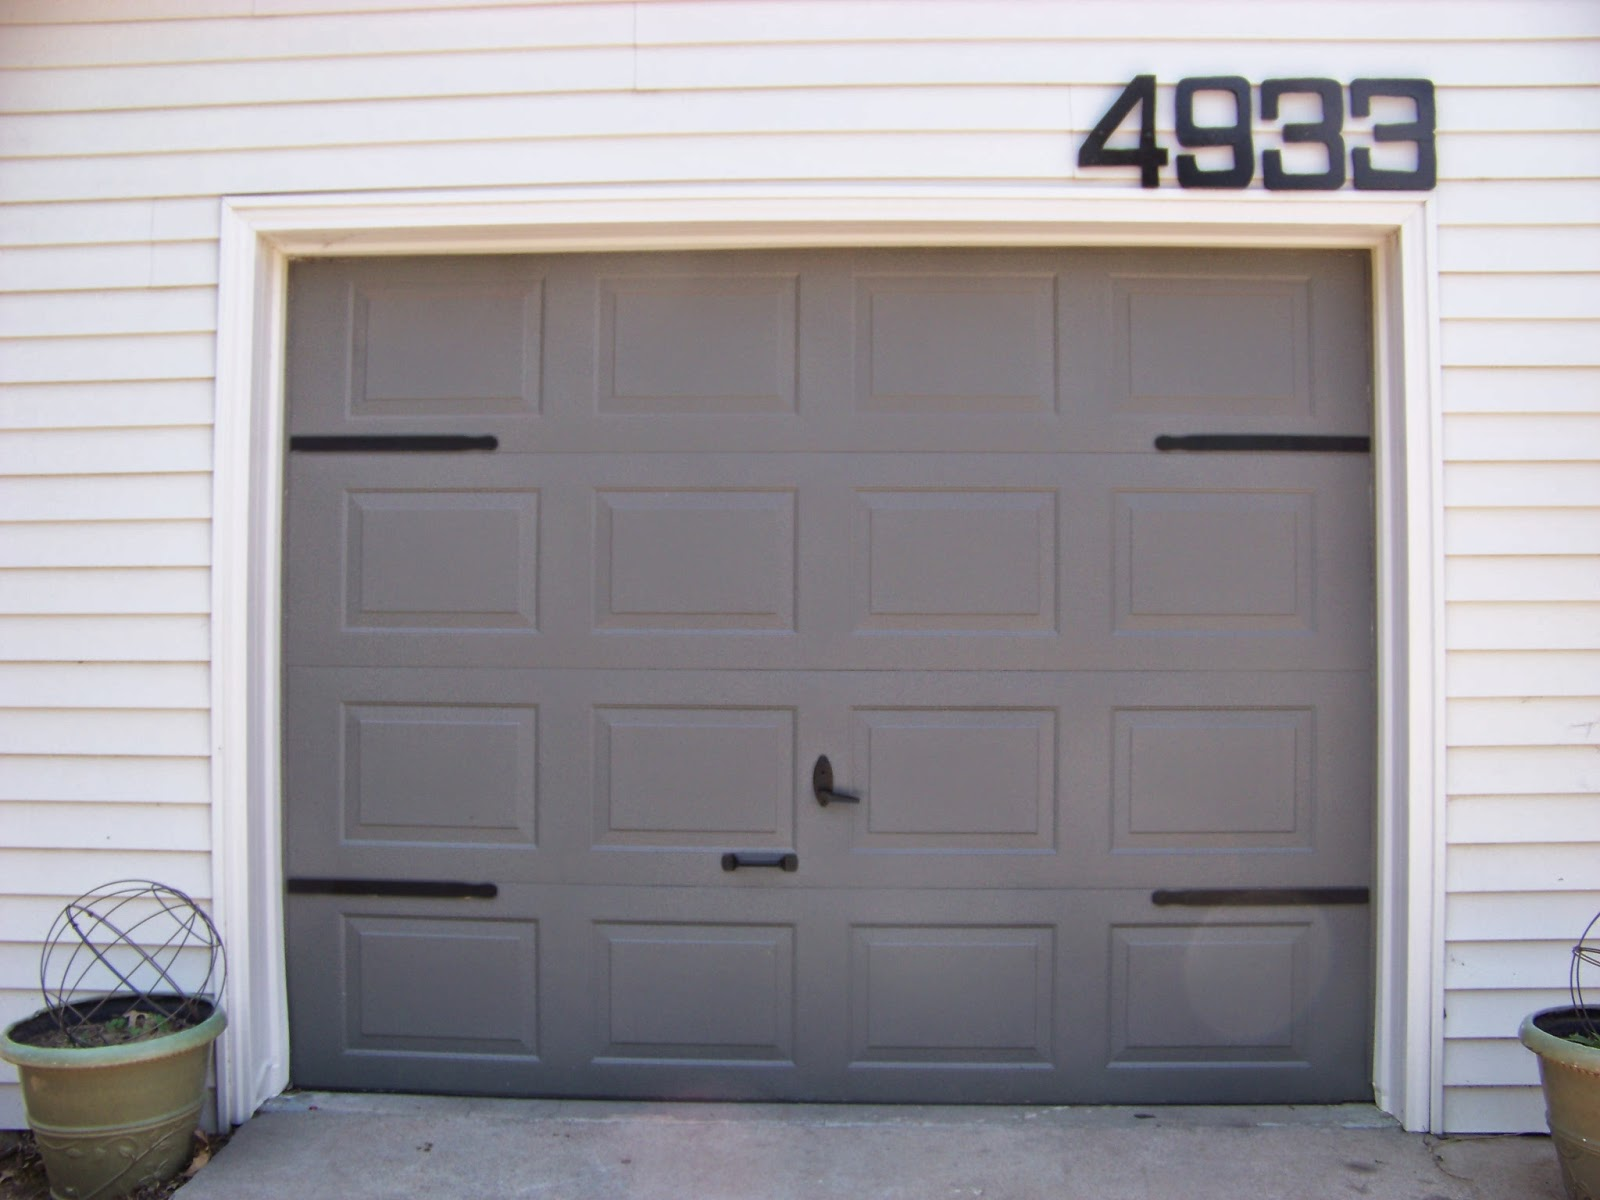 Remodelaholic diy garage door updates